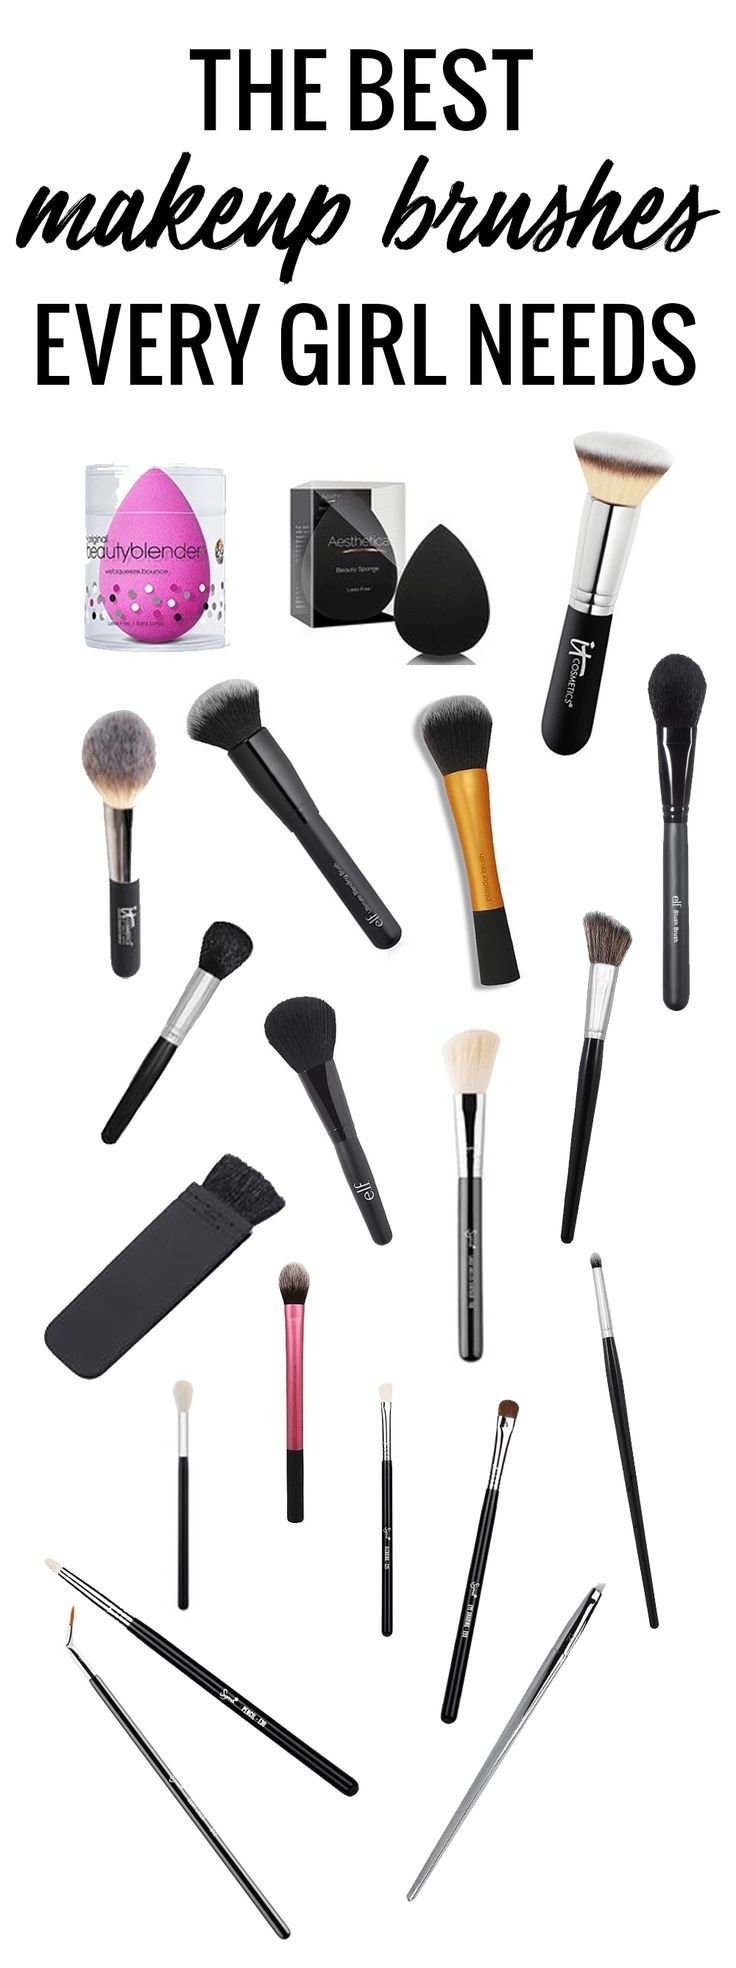 the best makeup brushes every girl needs